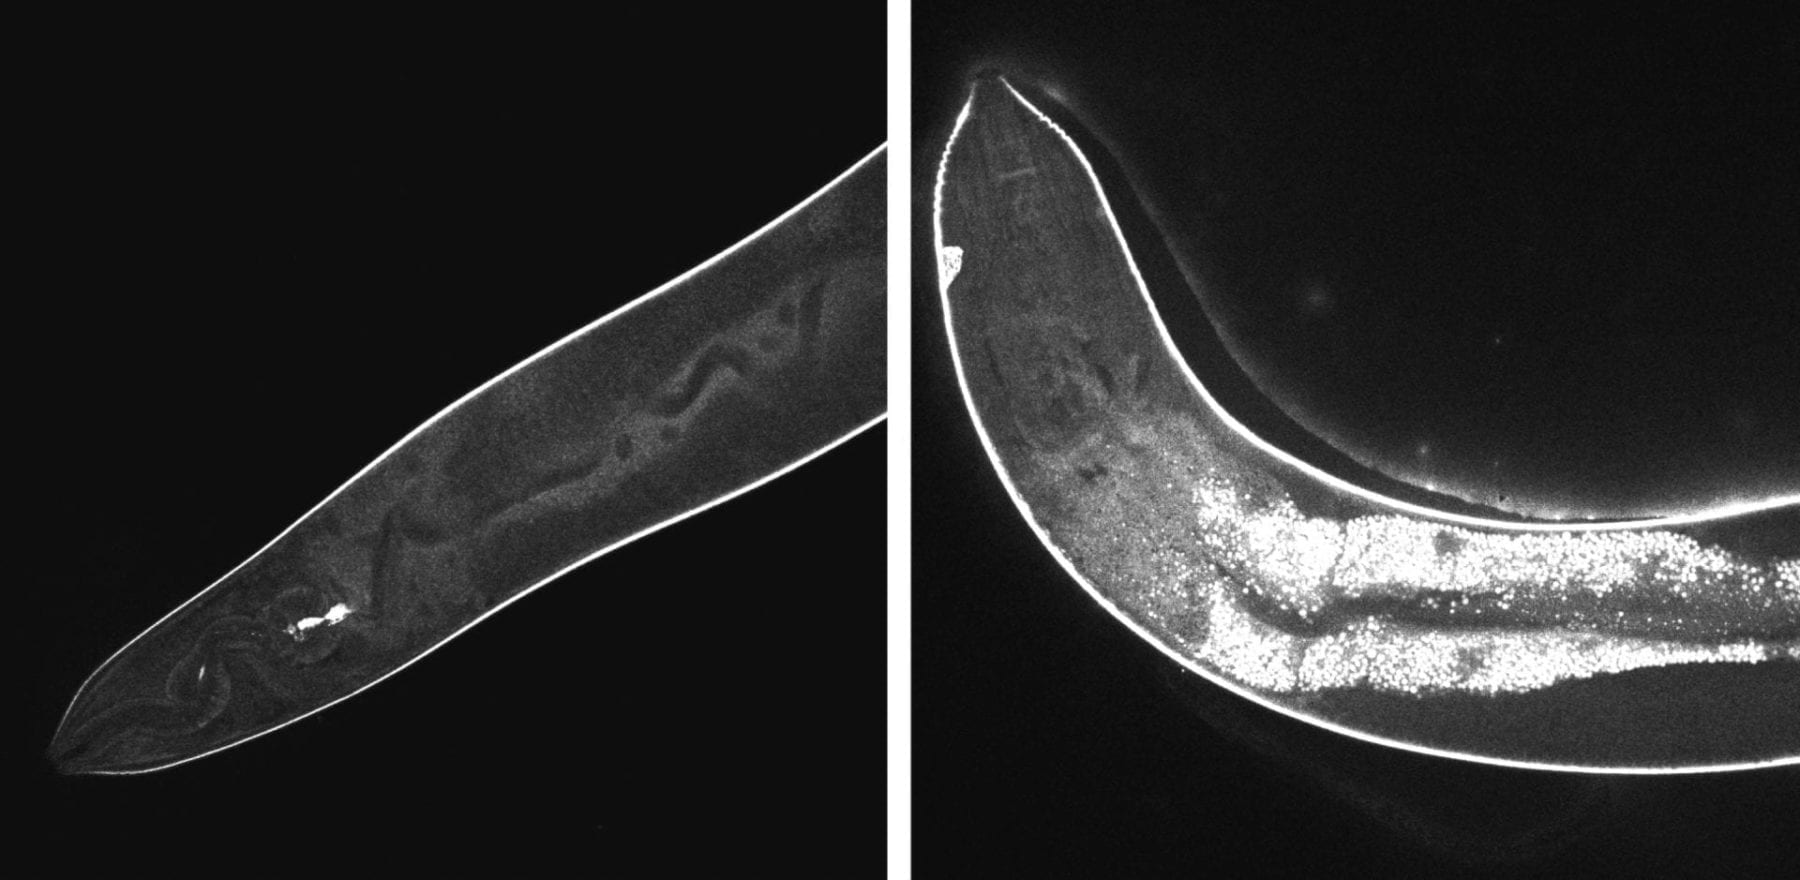 High-resolution confocal images show the effects of light-activated molecular drills on cells inside a worm. Before activation, at left, the injected drills remain dark. At right, after 15 minutes of exposure to light, fluorescent signals show widespread damage in the transparent nematodes. The drills developed at Rice University are intended to target drug-resistant bacteria, cancer and other disease-causing cells and destroy them without damaging adjacent healthy cells. Image by Thushara Galbadage/Biola University